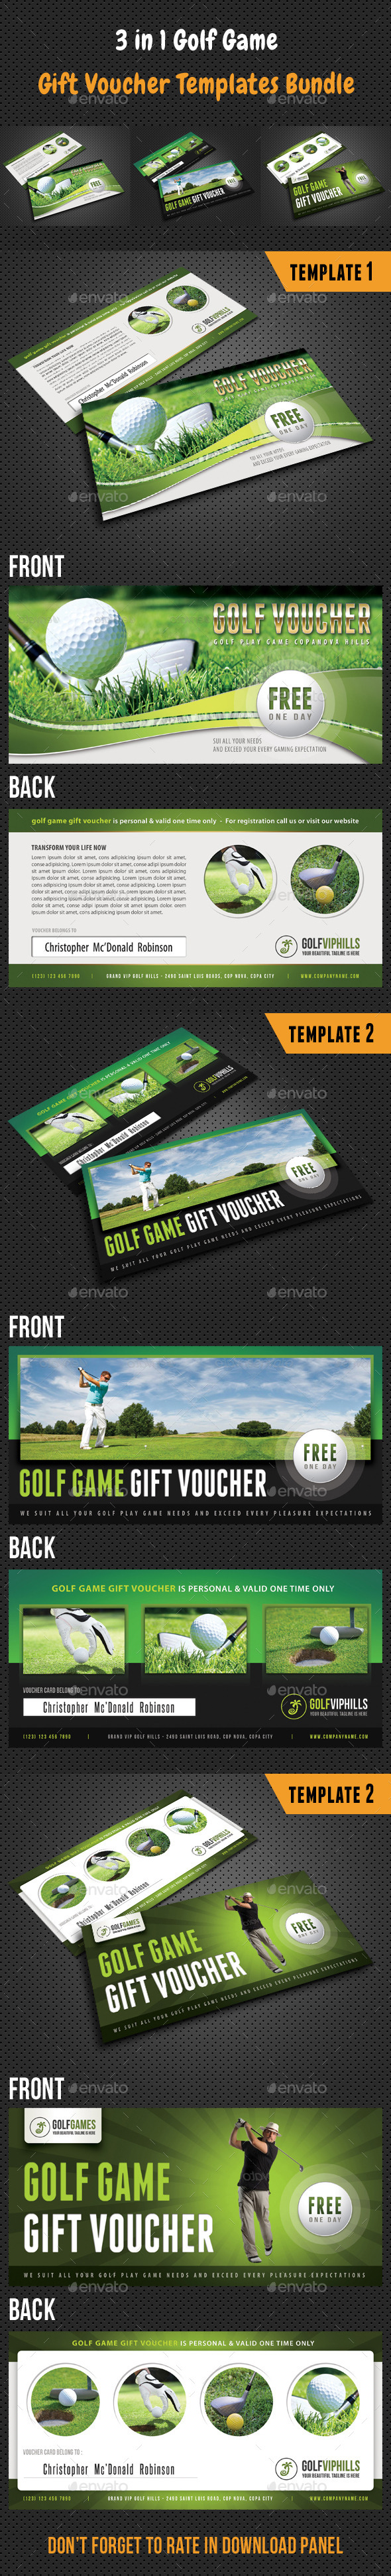 GraphicRiver 3 in 1 Golf Game Gift Voucher Bundle 9263494